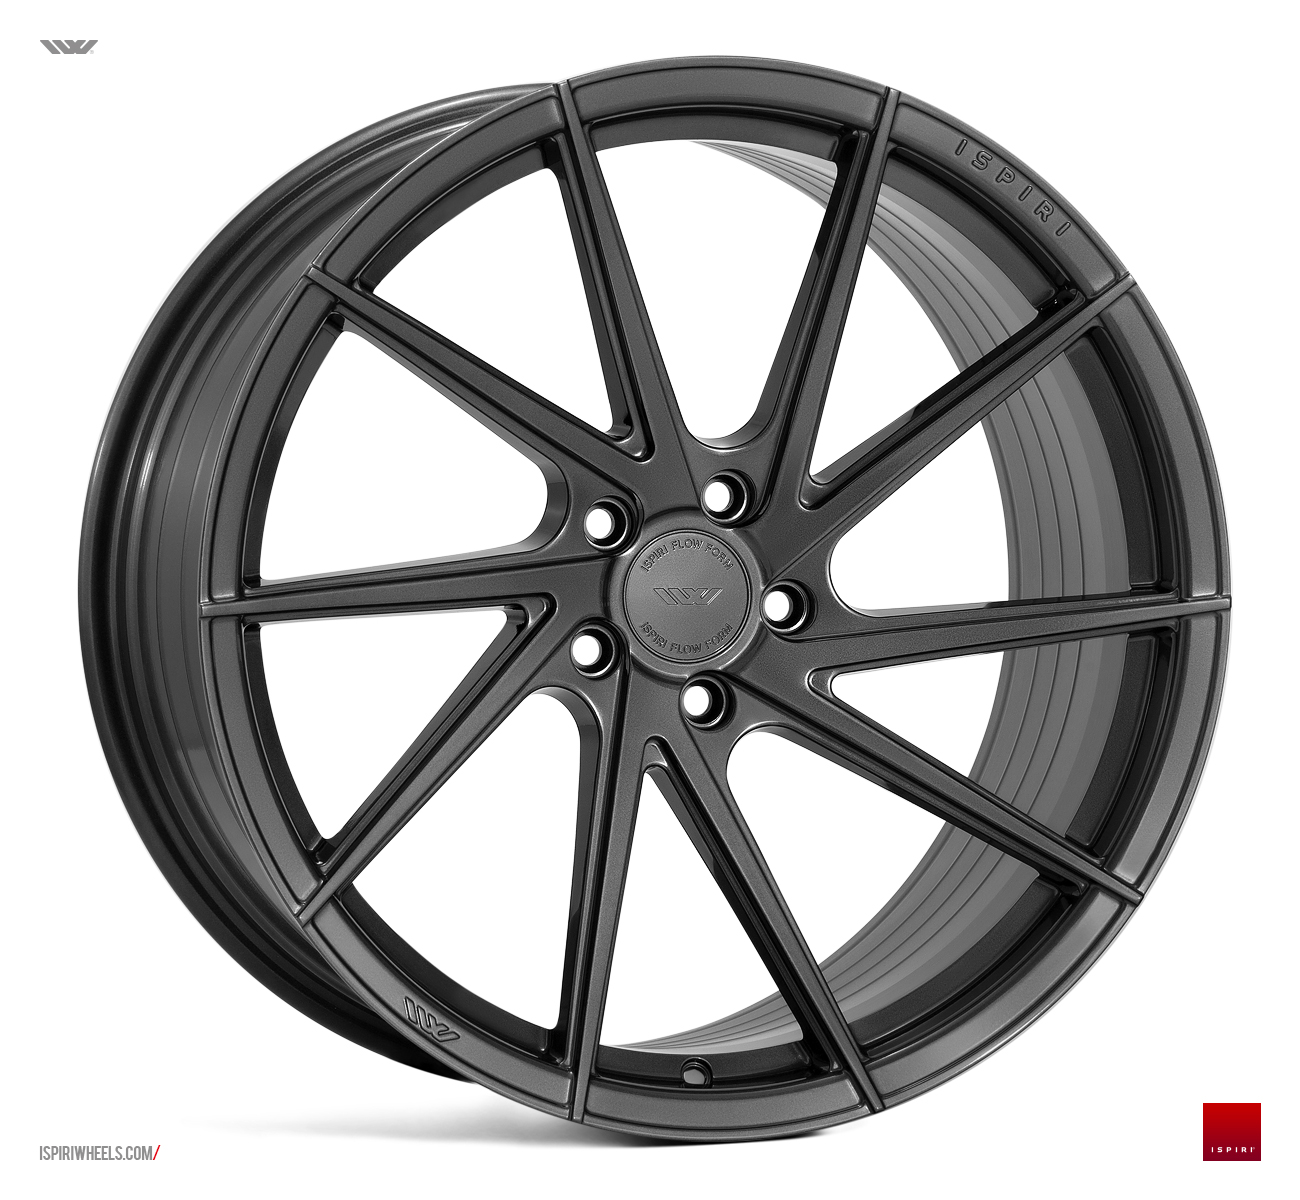 "NEW 19"" ISPIRI FFR1D MULTI-SPOKE DIRECTIONAL ALLOY WHEELS IN CARBON GRAPHITE, WIDER 10"" REARS"